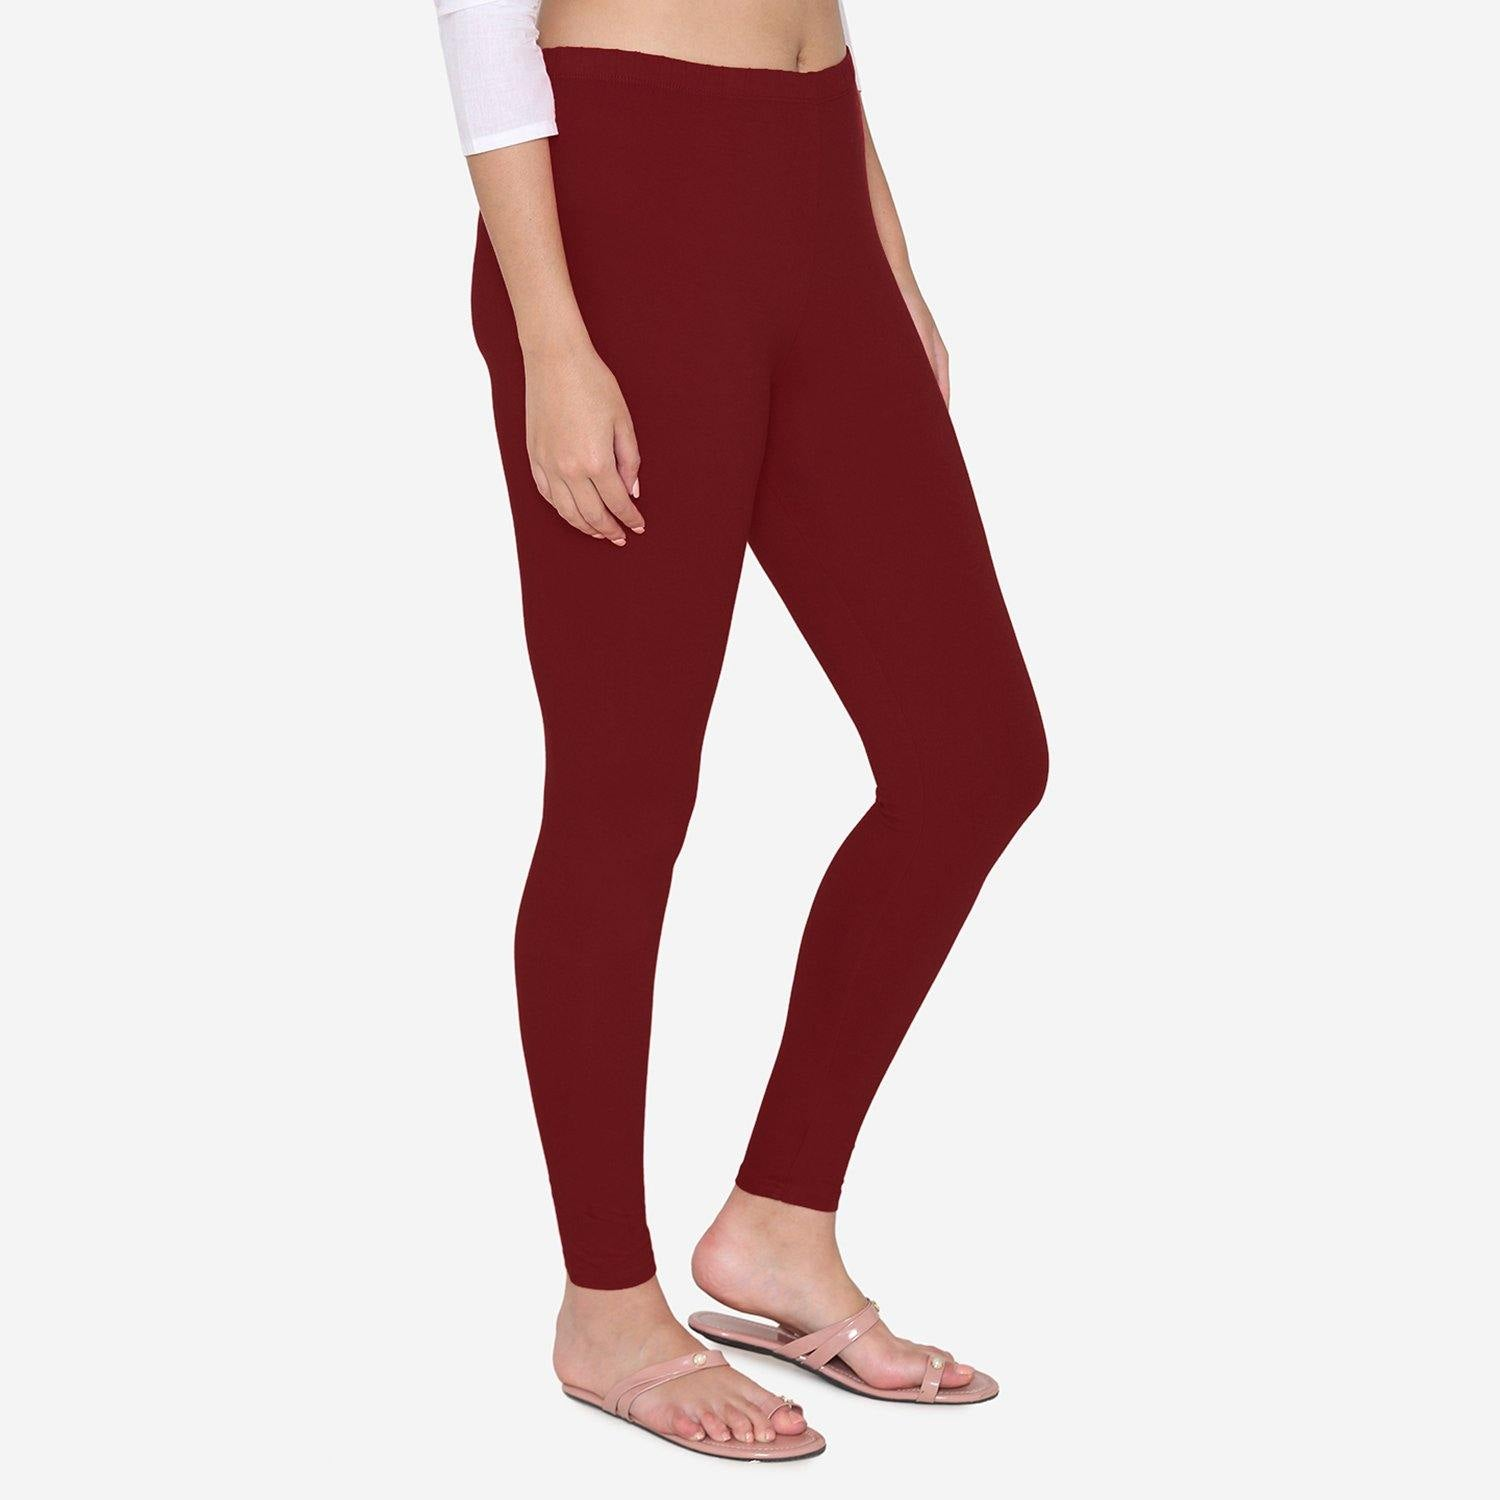 Cotton Stretchable Ankle Leggings